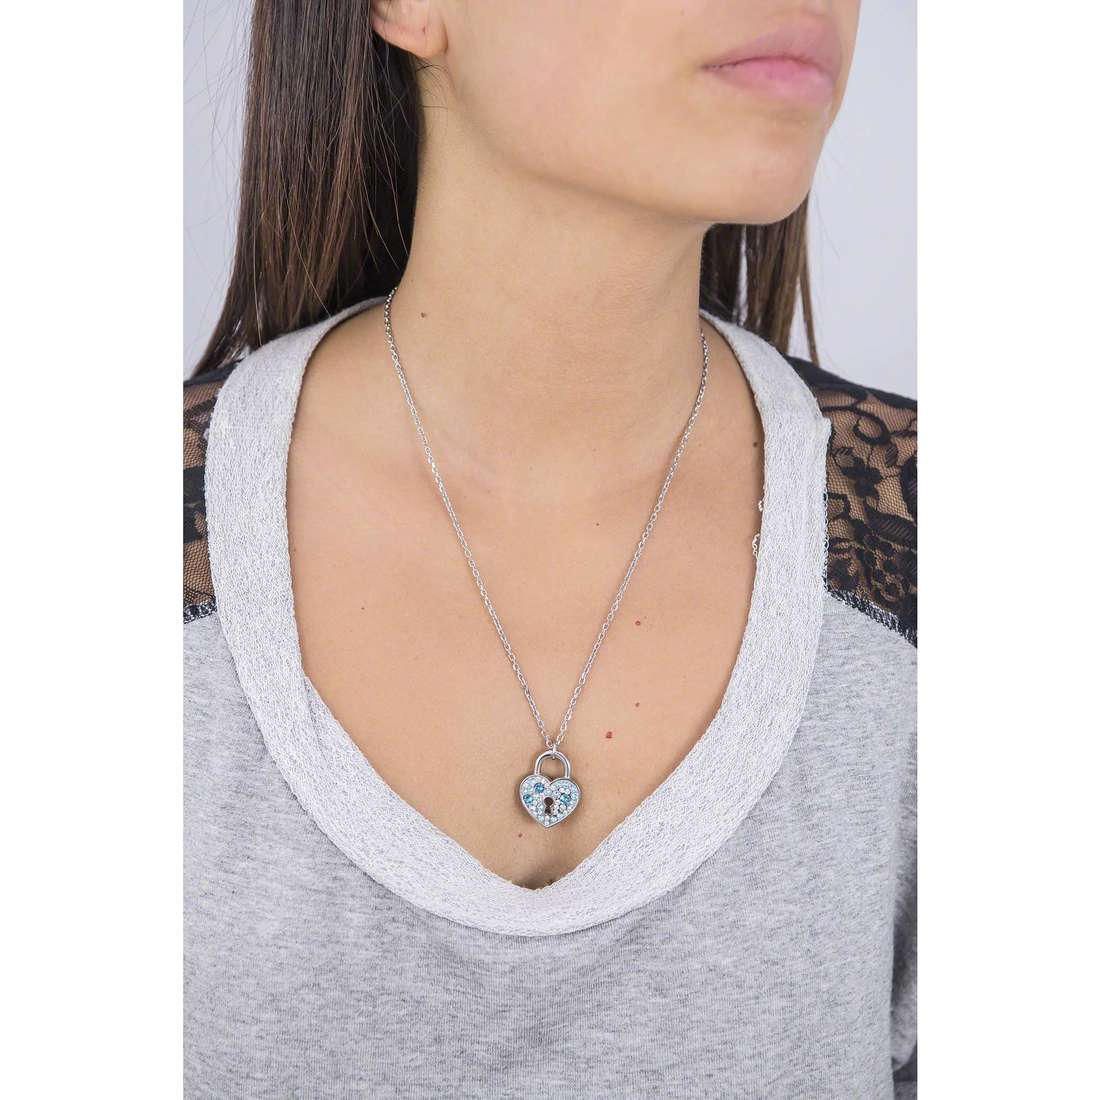 Brosway necklaces Private woman BPV05 photo wearing